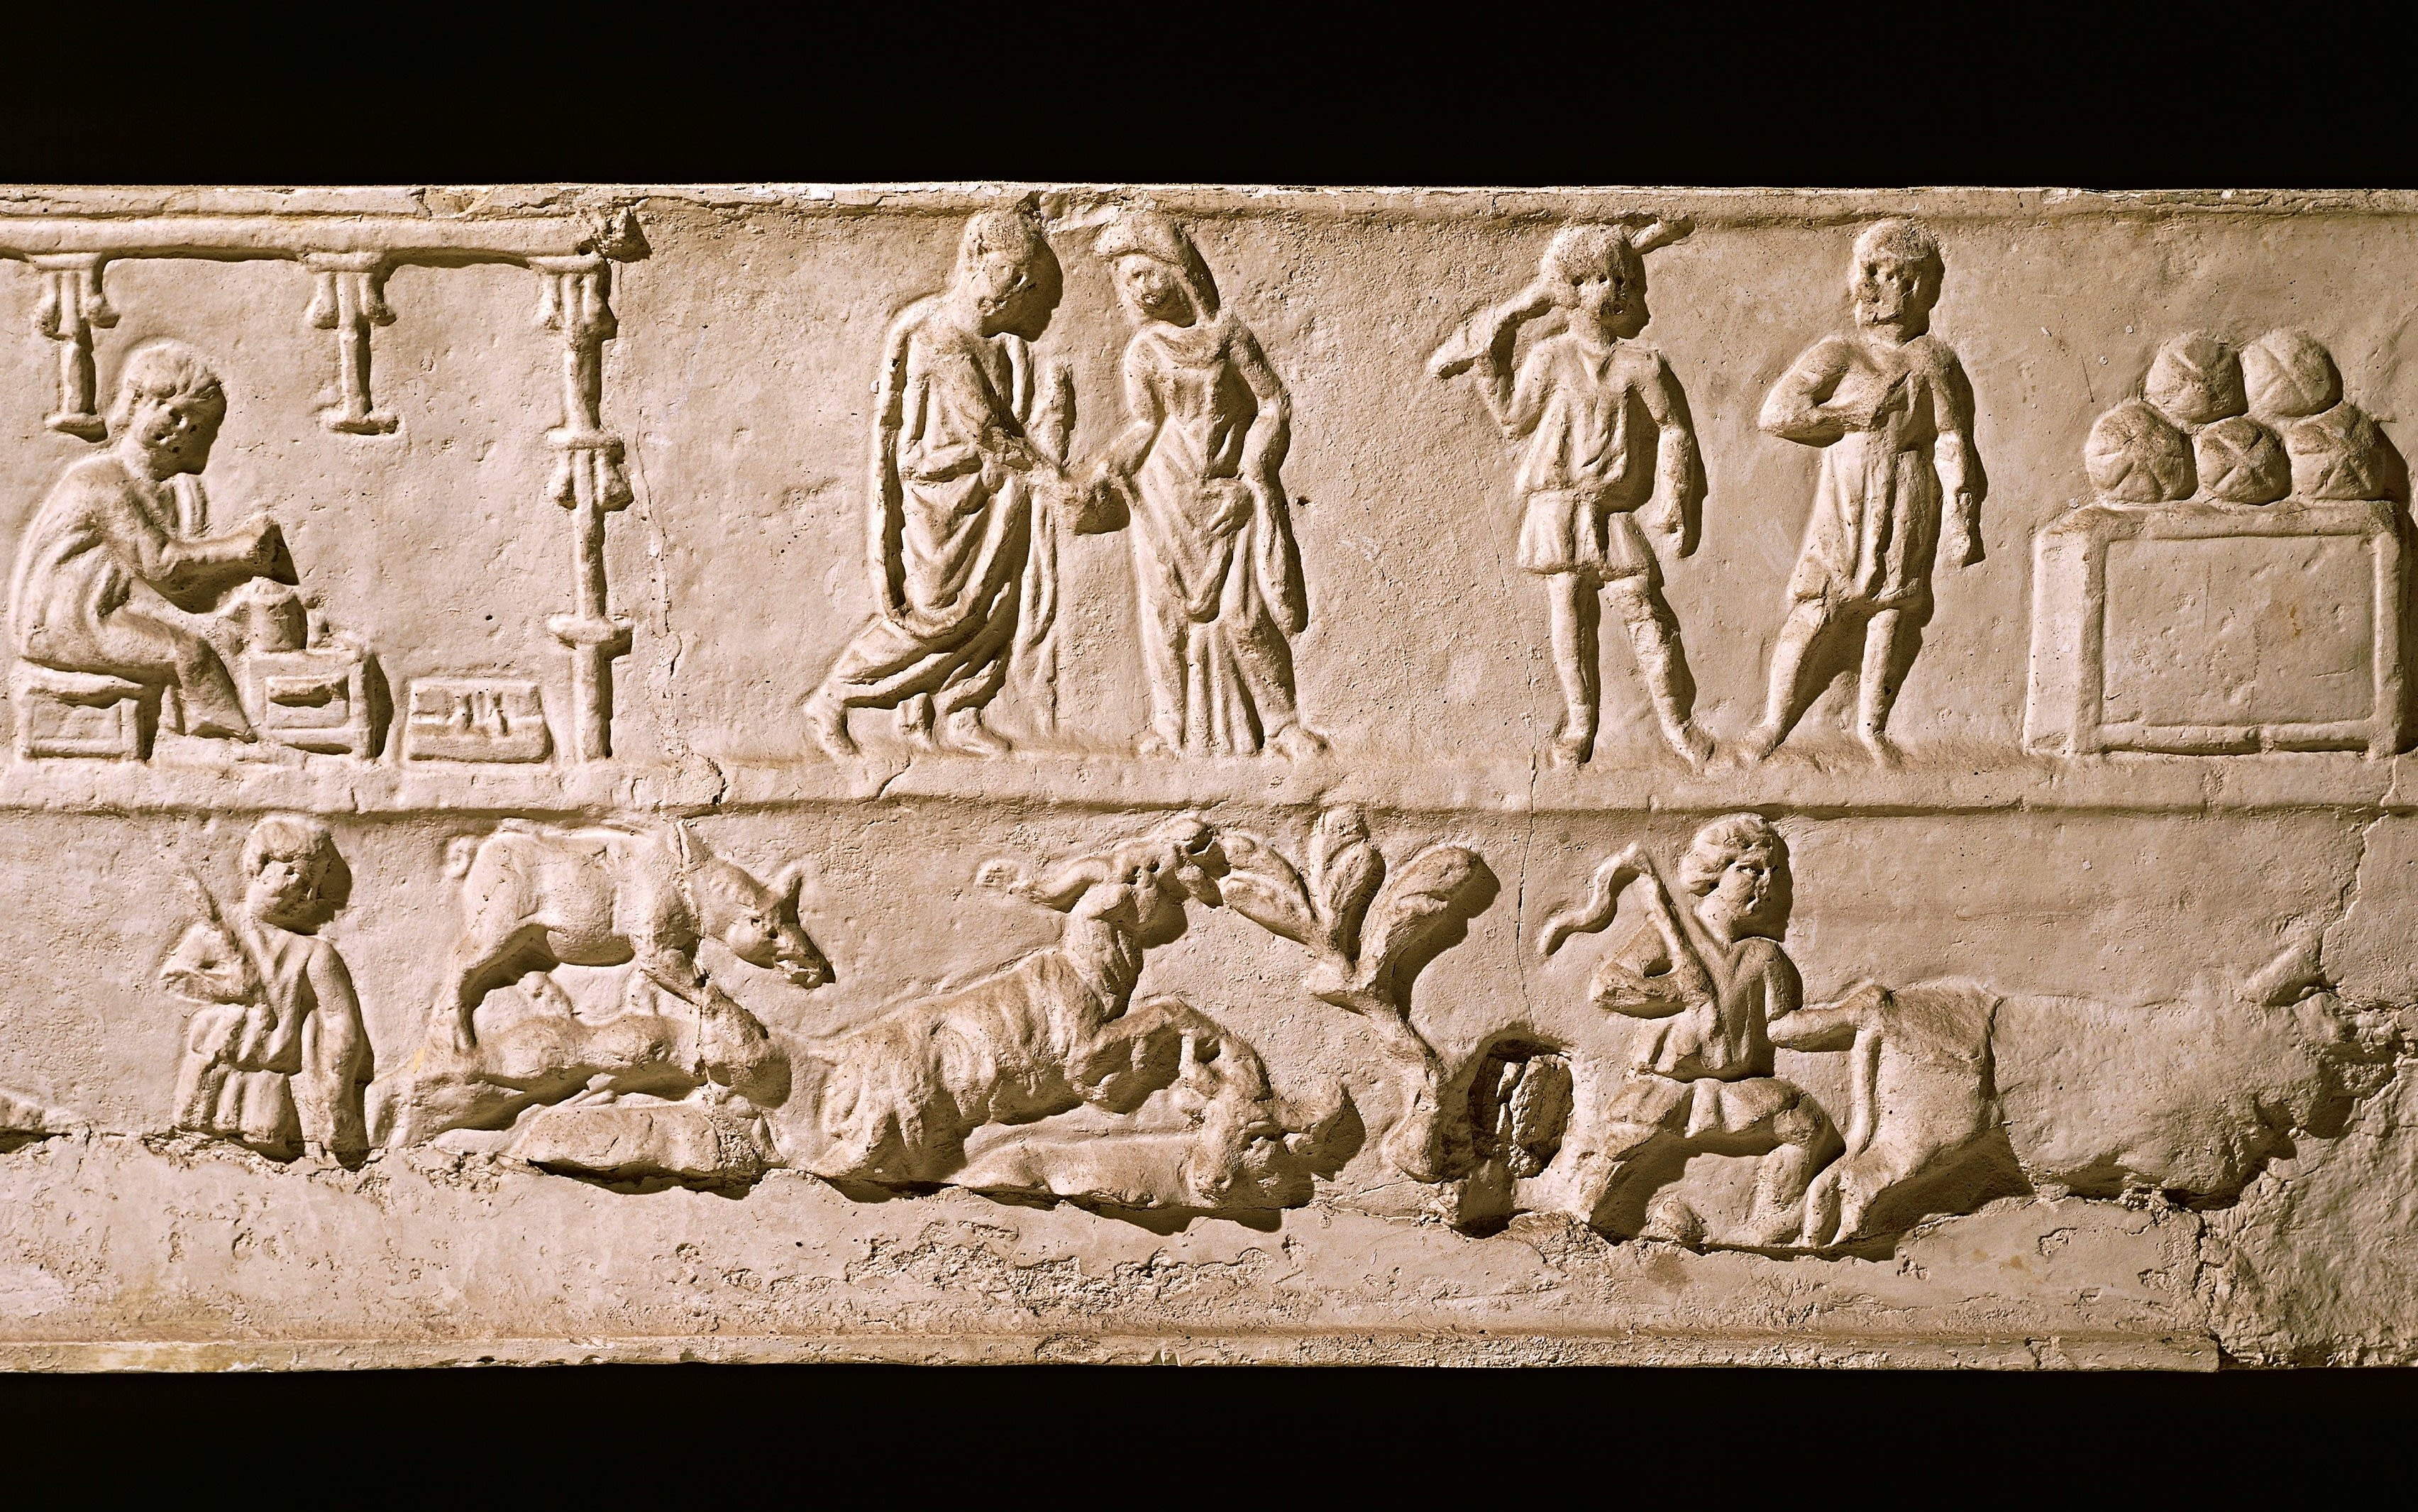 CIRCA 2002: Relief from a sarcophagus depicting scenes of everyday life. Roman Civilisation, 2nd Century. Rome, Museo Della Civiltà Romana.